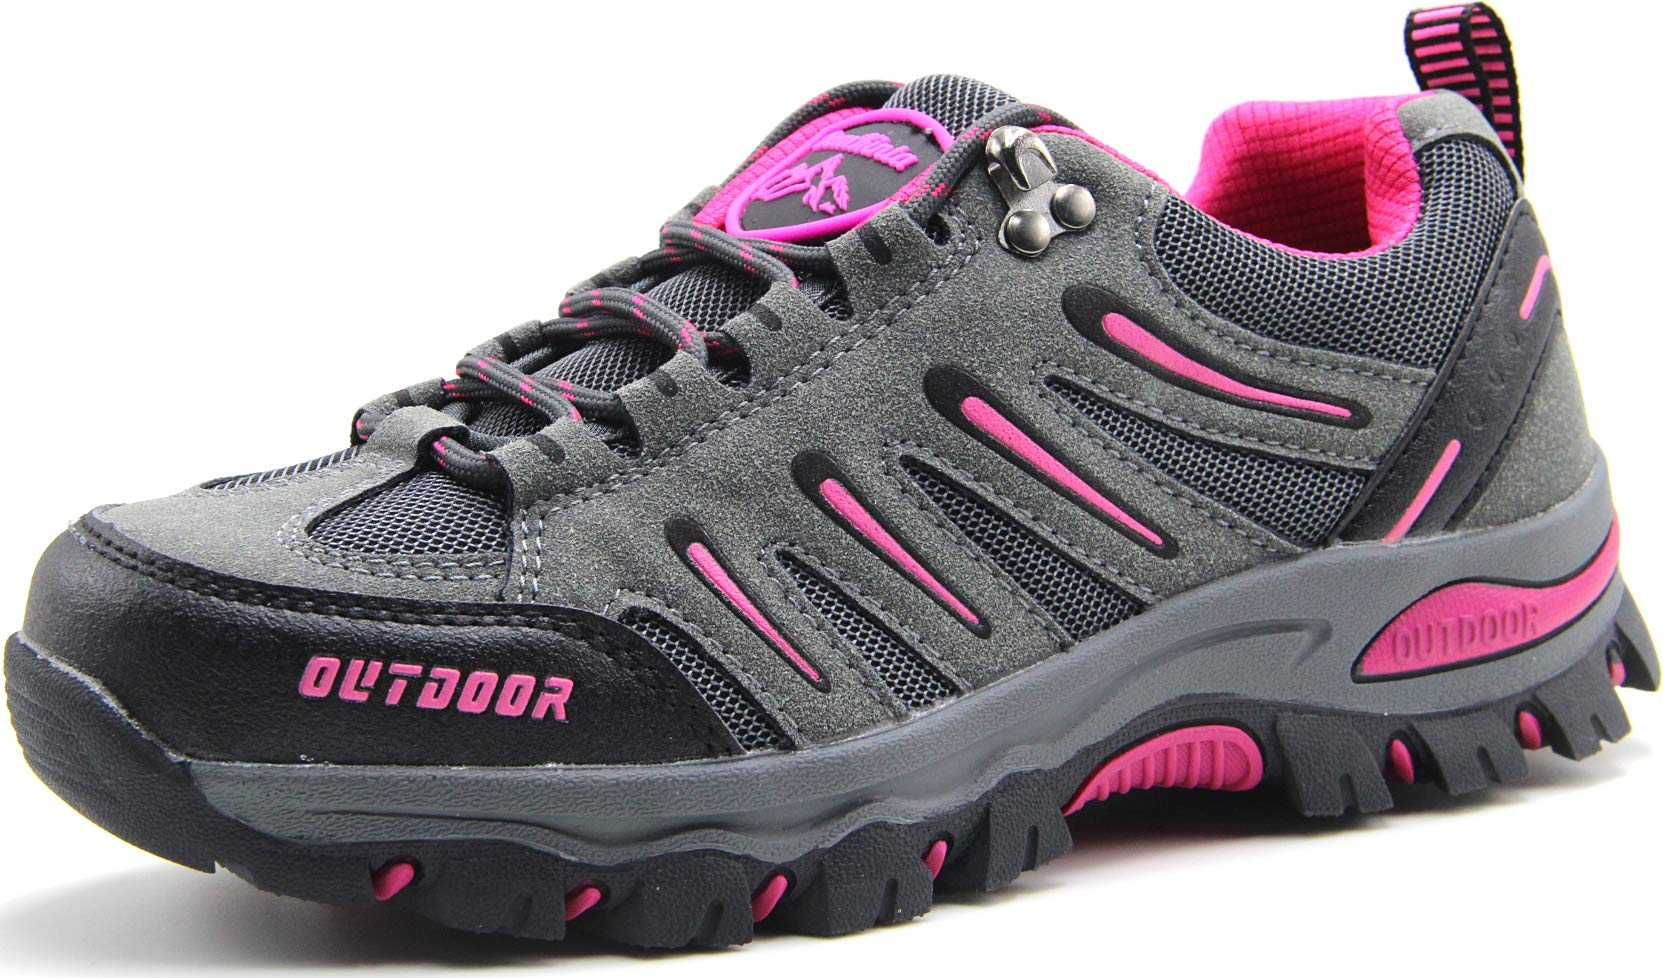 BomKinta Women's Anti-Slip Lightweight Breathable Hiking Shoes Quick-Dry Trekking Shoes for Women